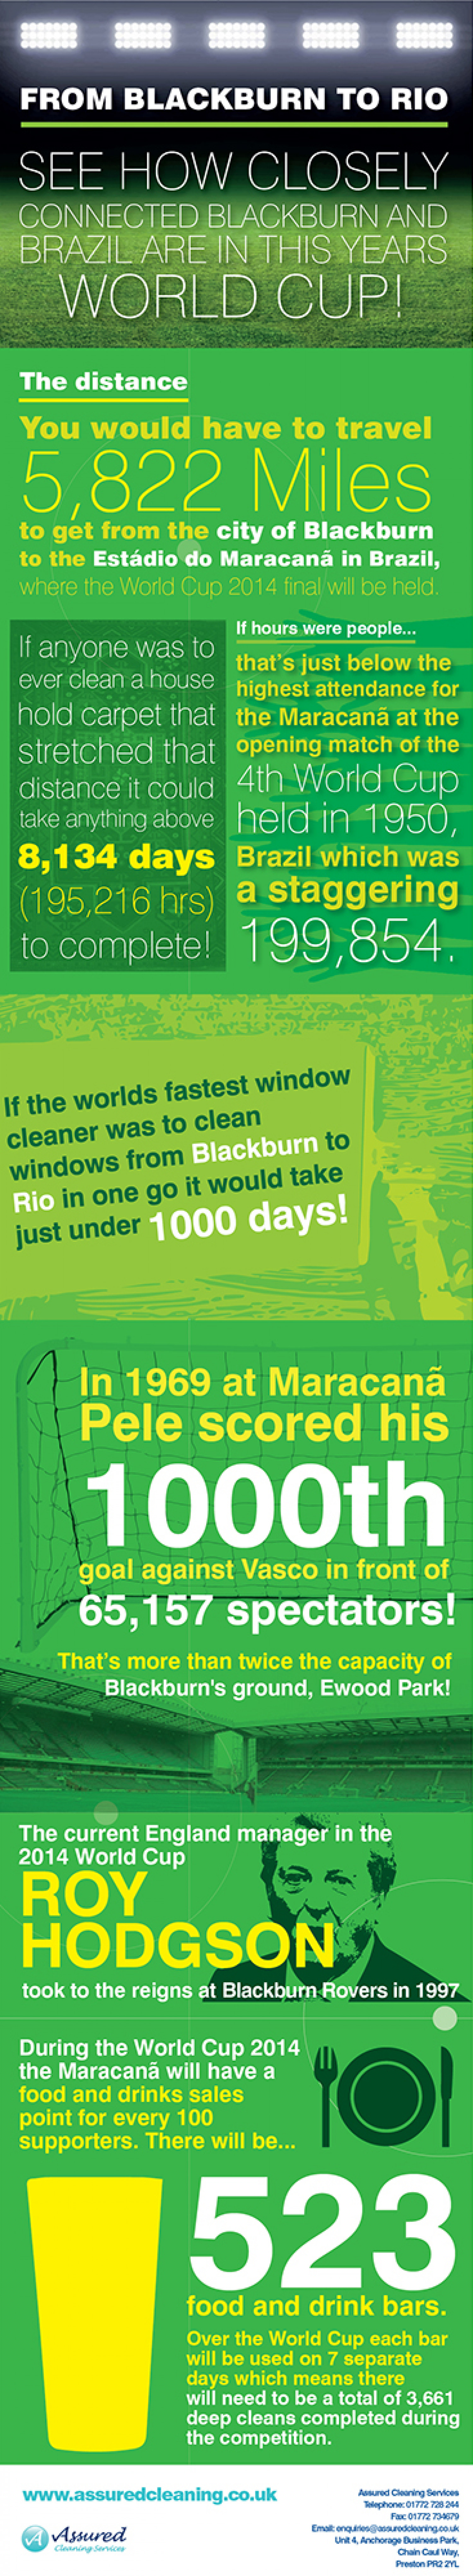 From Blackburn to Rio Infographic